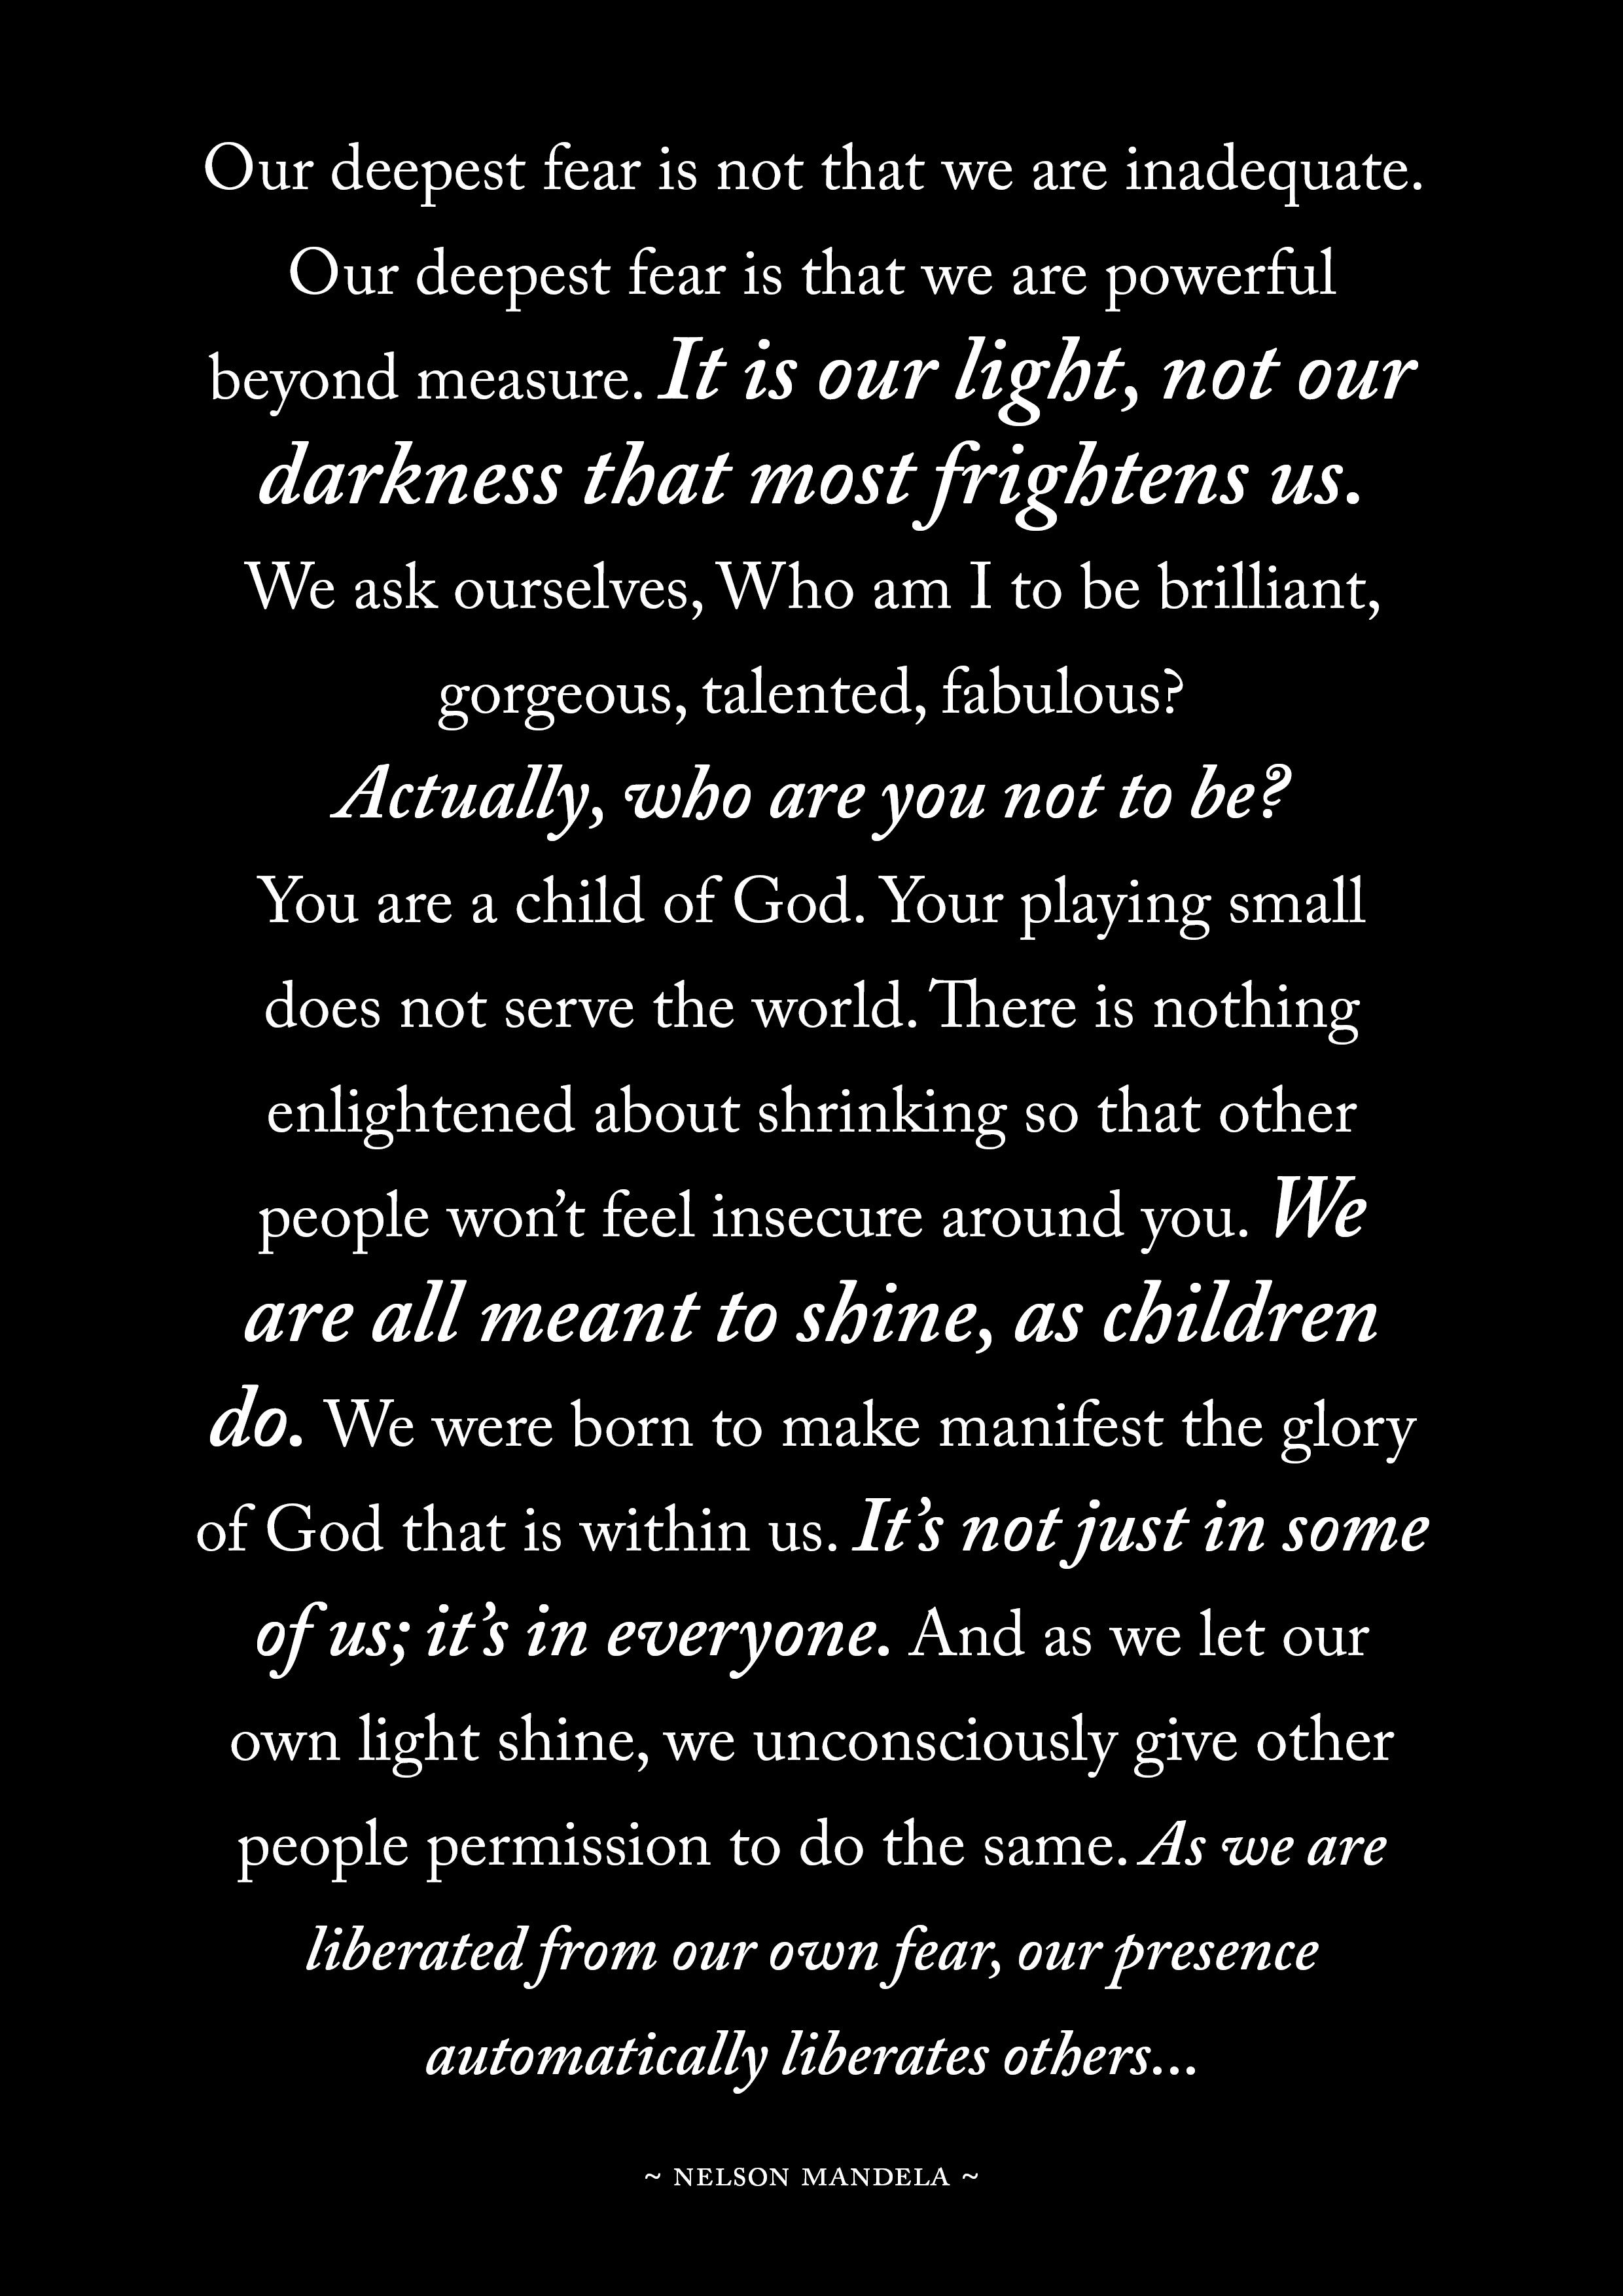 [IMAGE] We are All Meant to SHINE